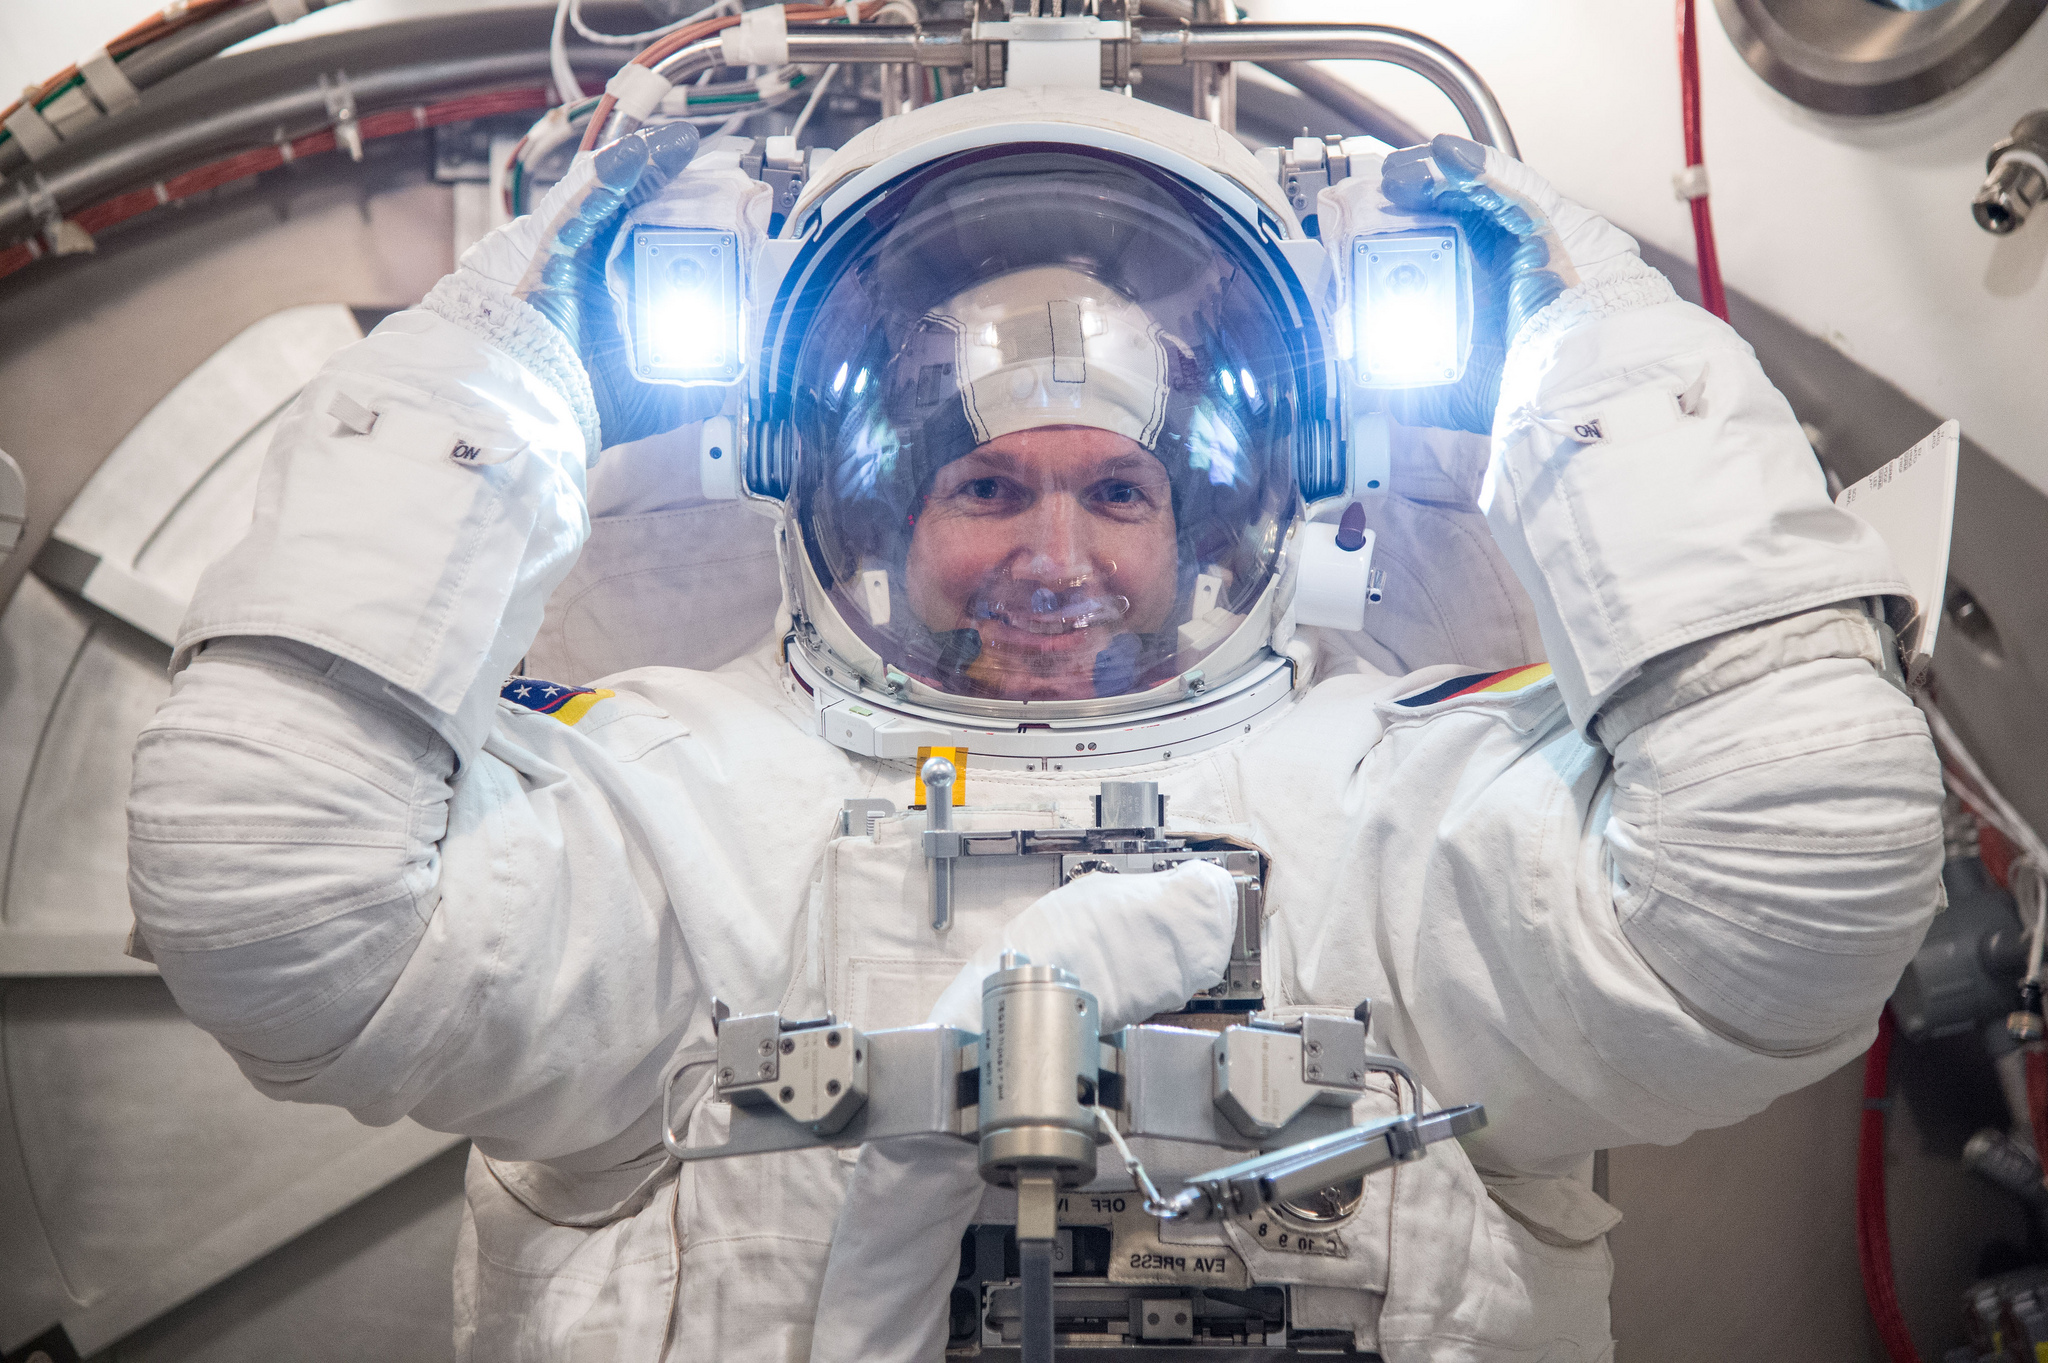 an astronaut in his space suit and with a propulsion - photo #22